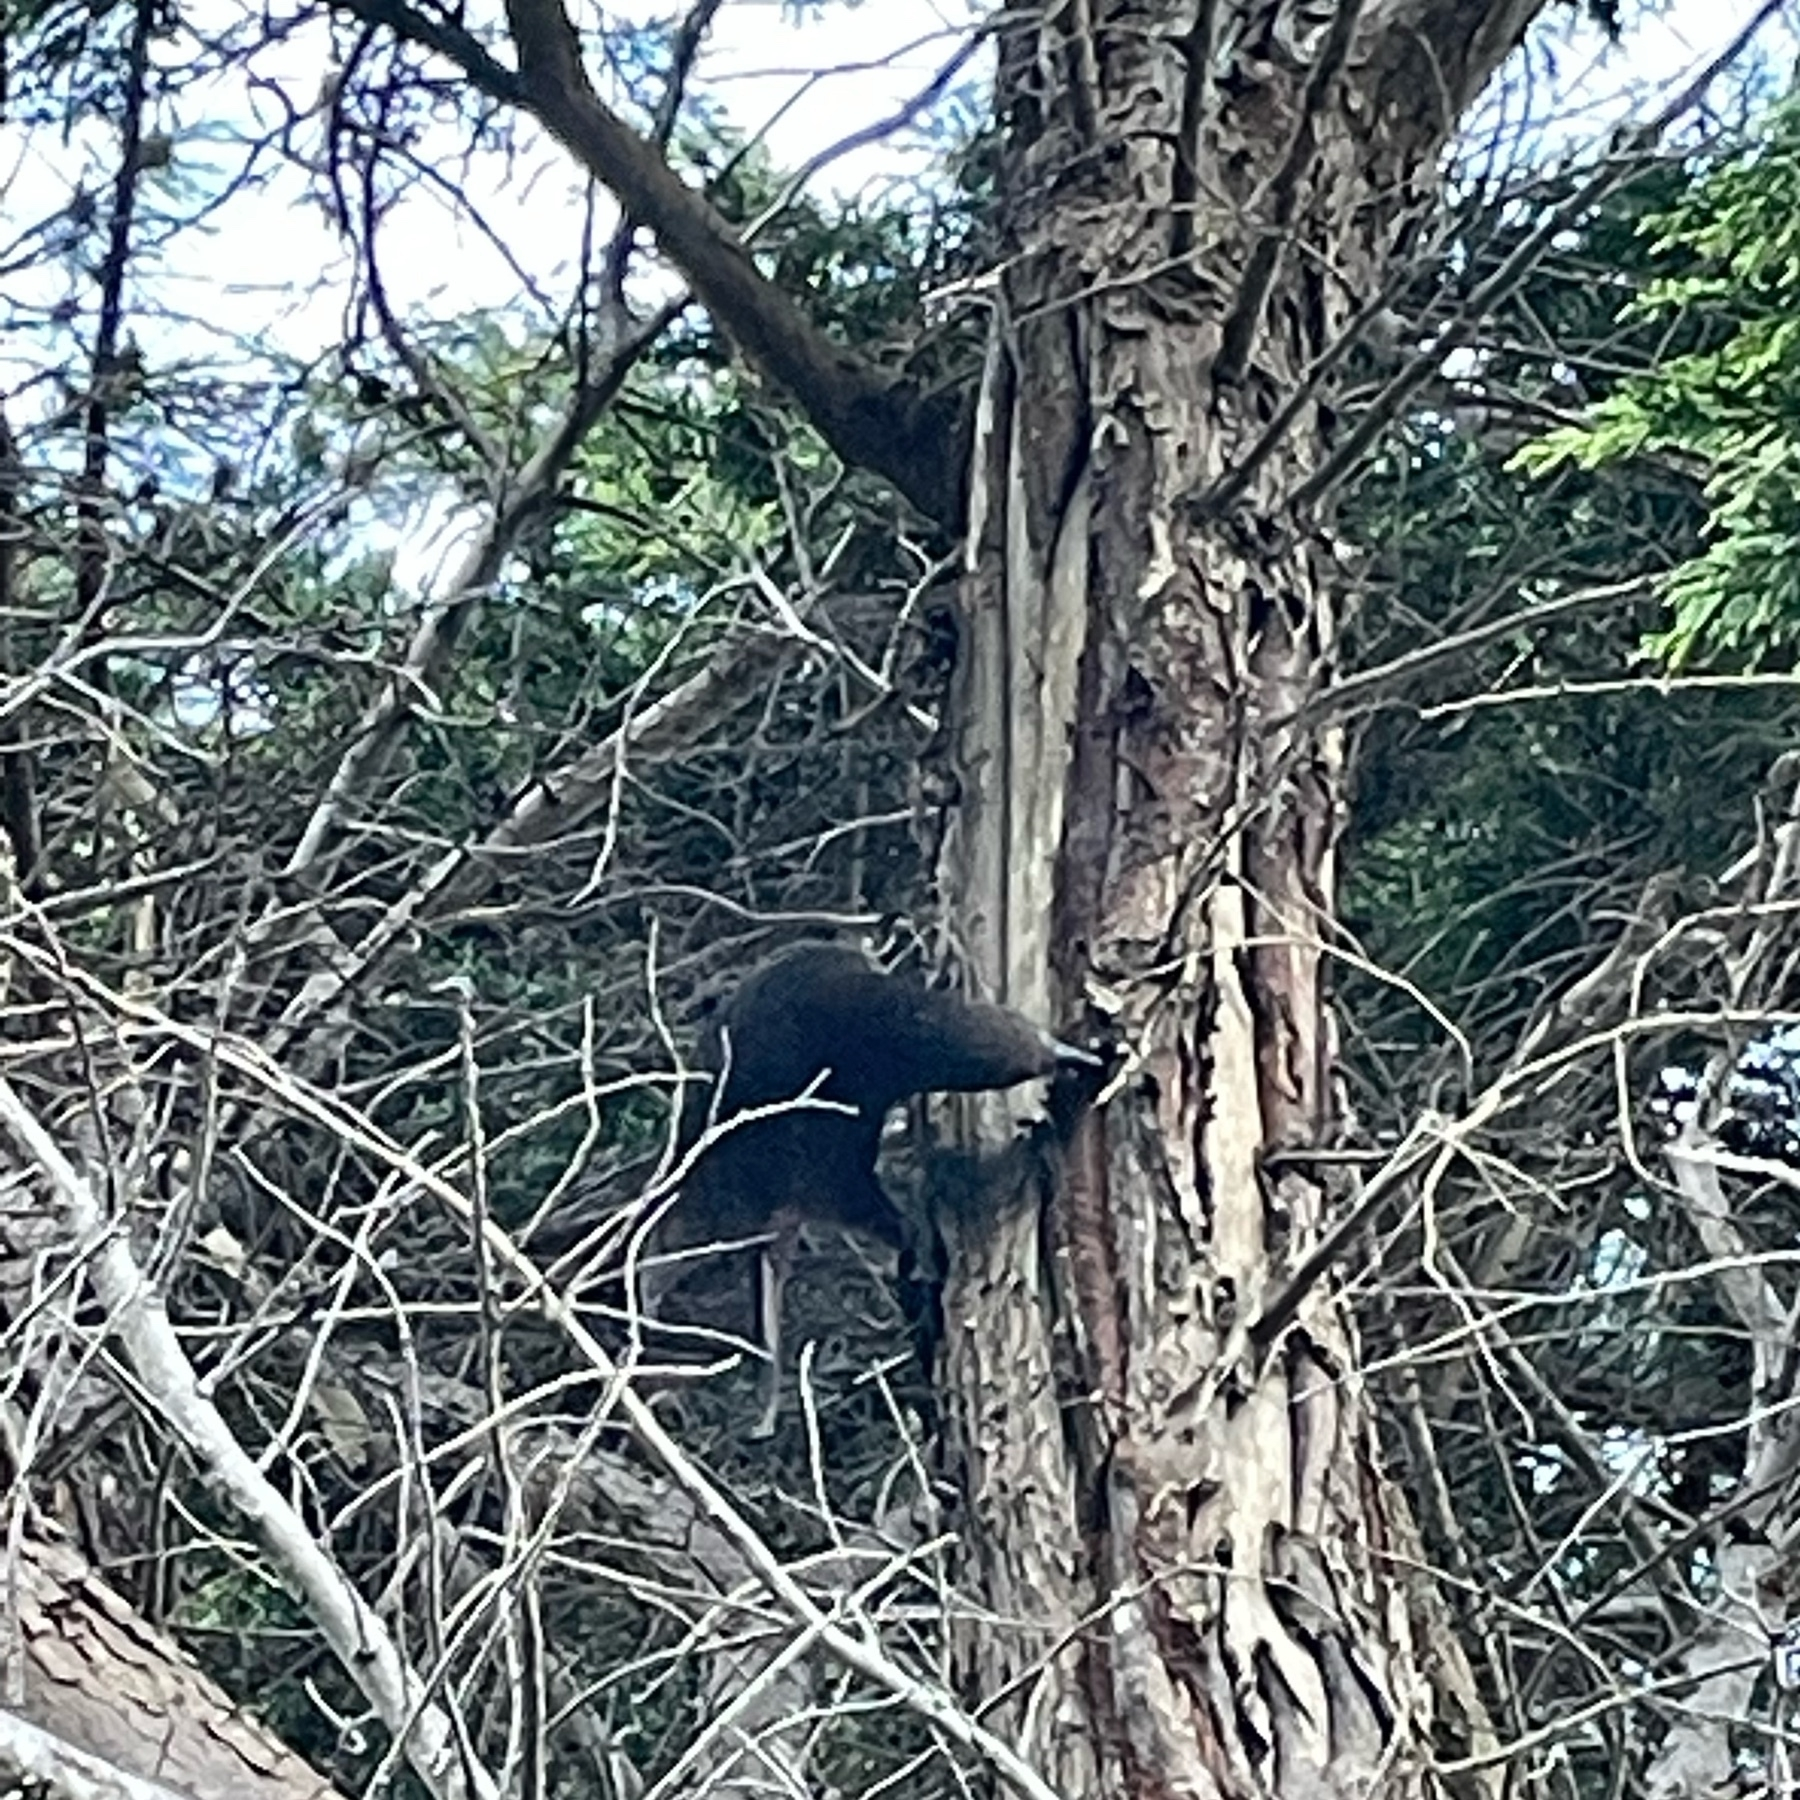 A kaka, a large parrot around half a metre in length and half a kg in weight. Ripping sections of bark off a kowhai tree with it's large beak, possibly to et the tree sap.